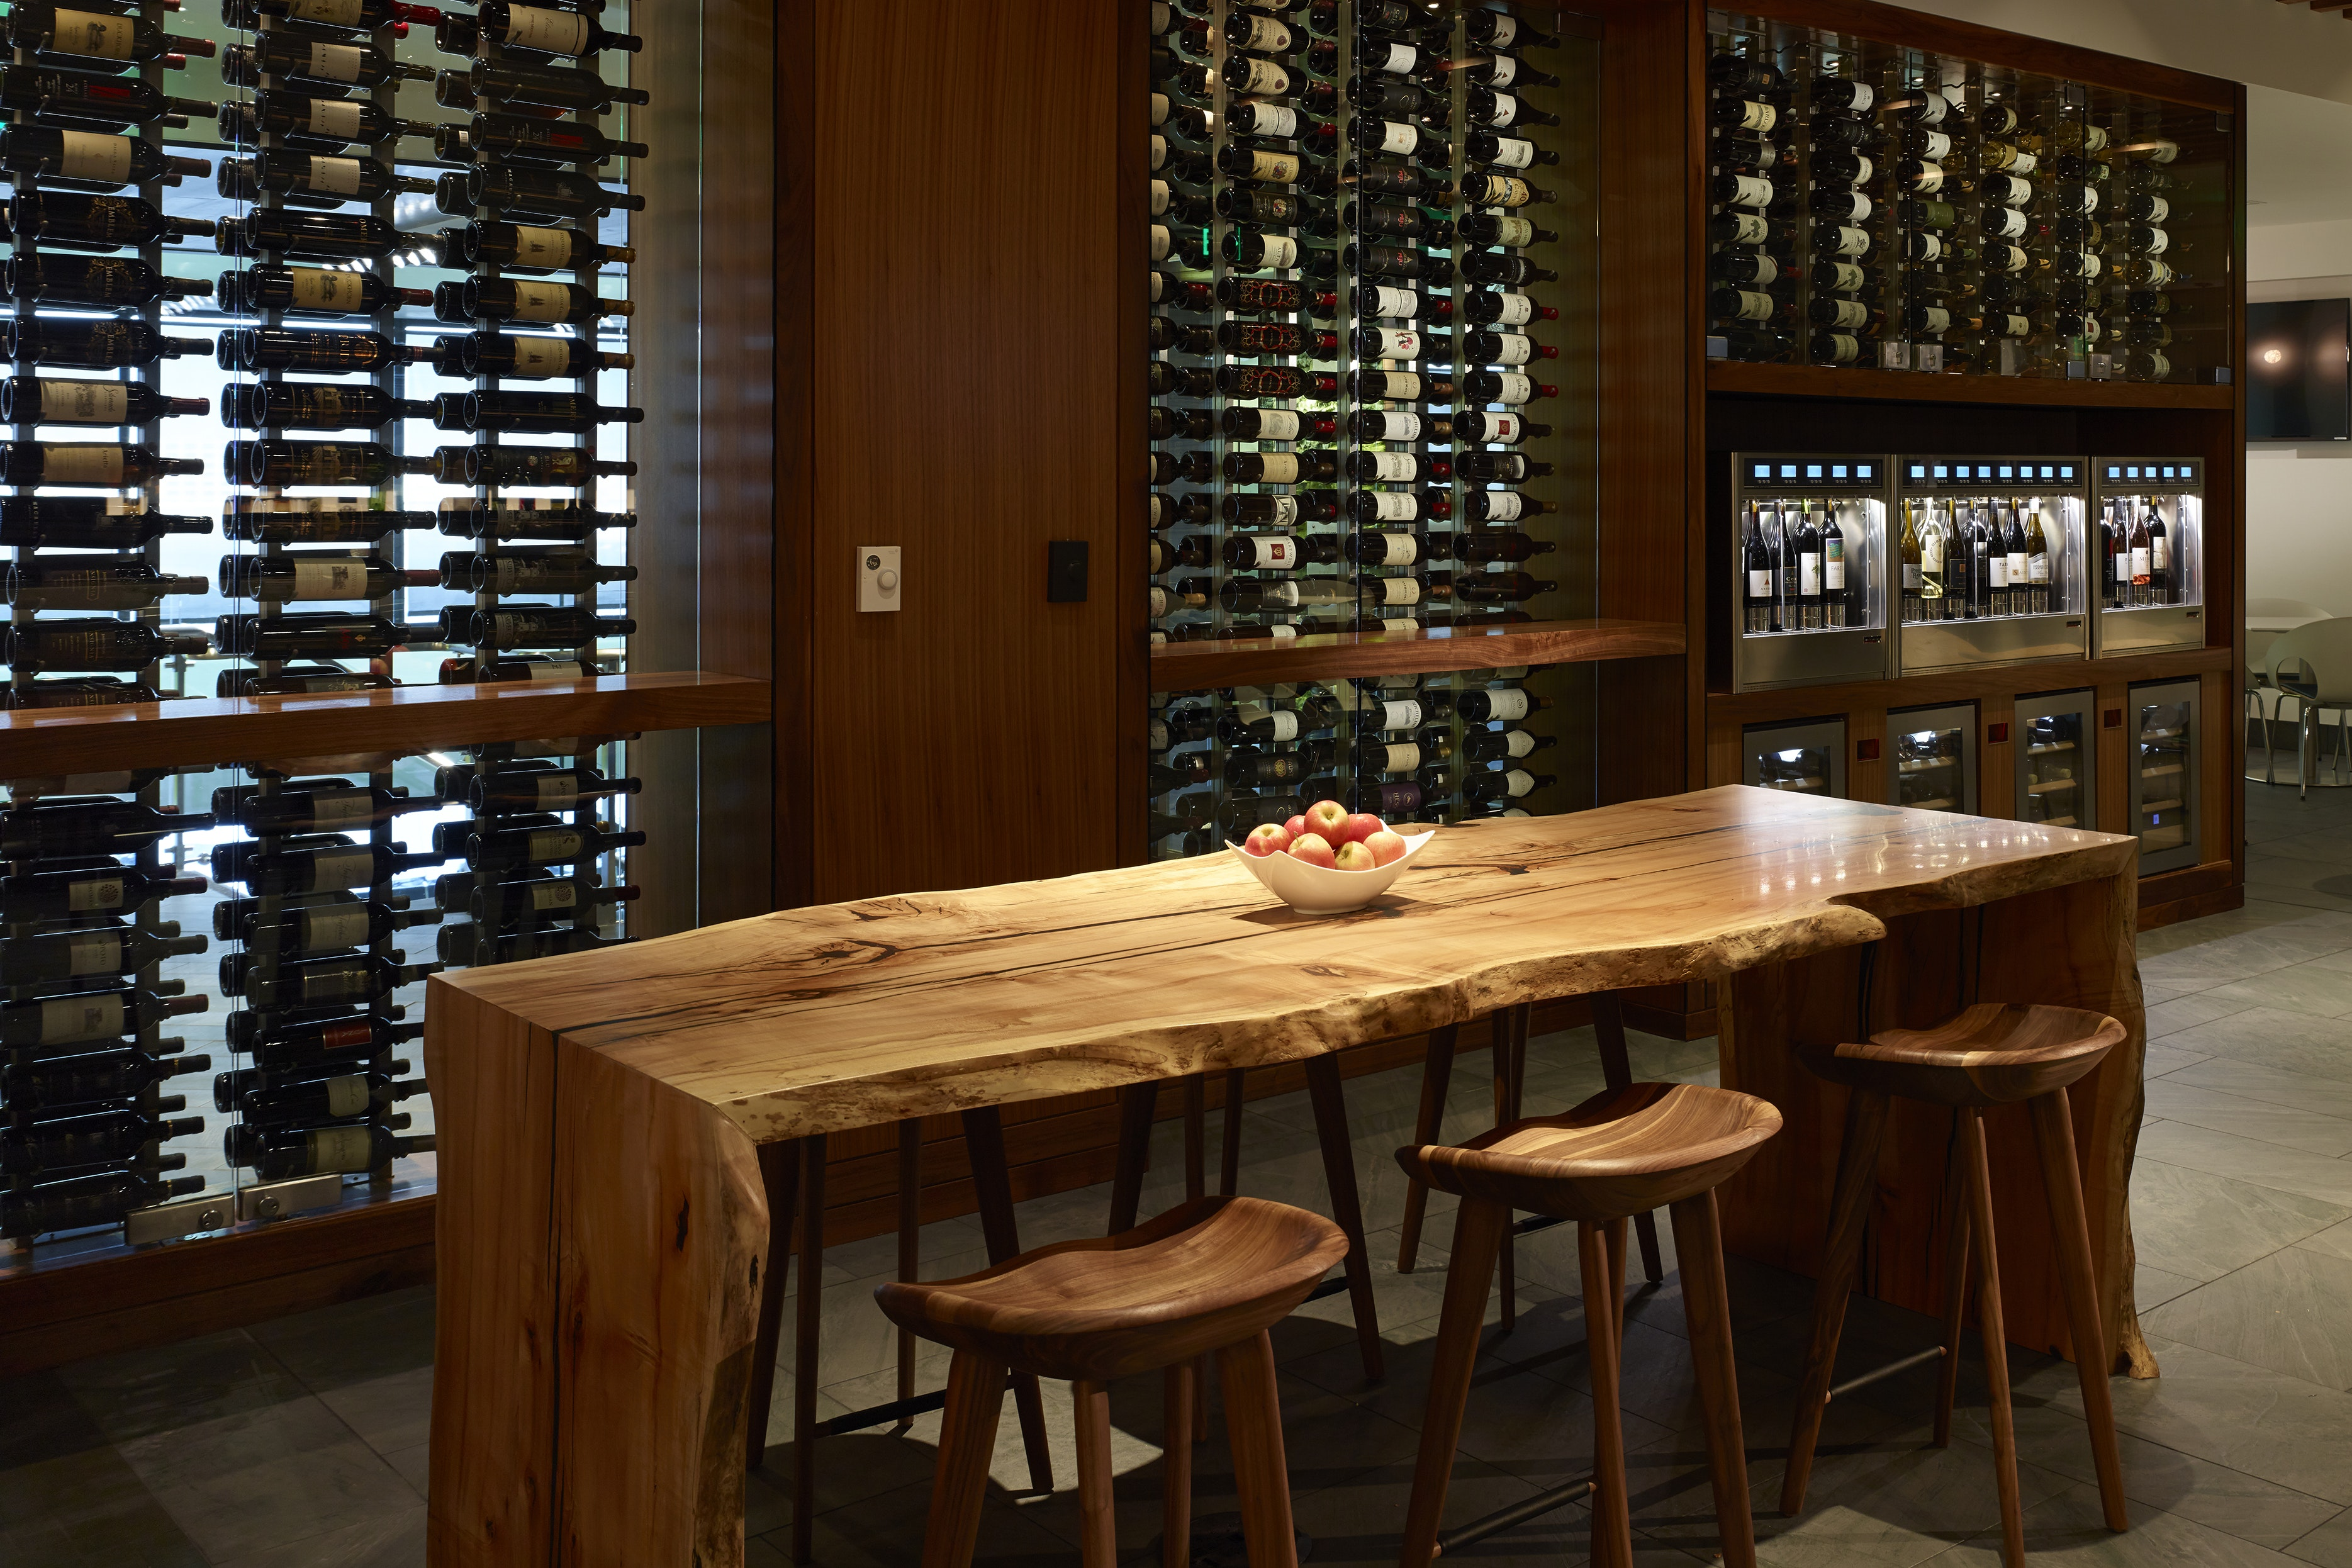 The wine bar at SFO's Centurion Lounge